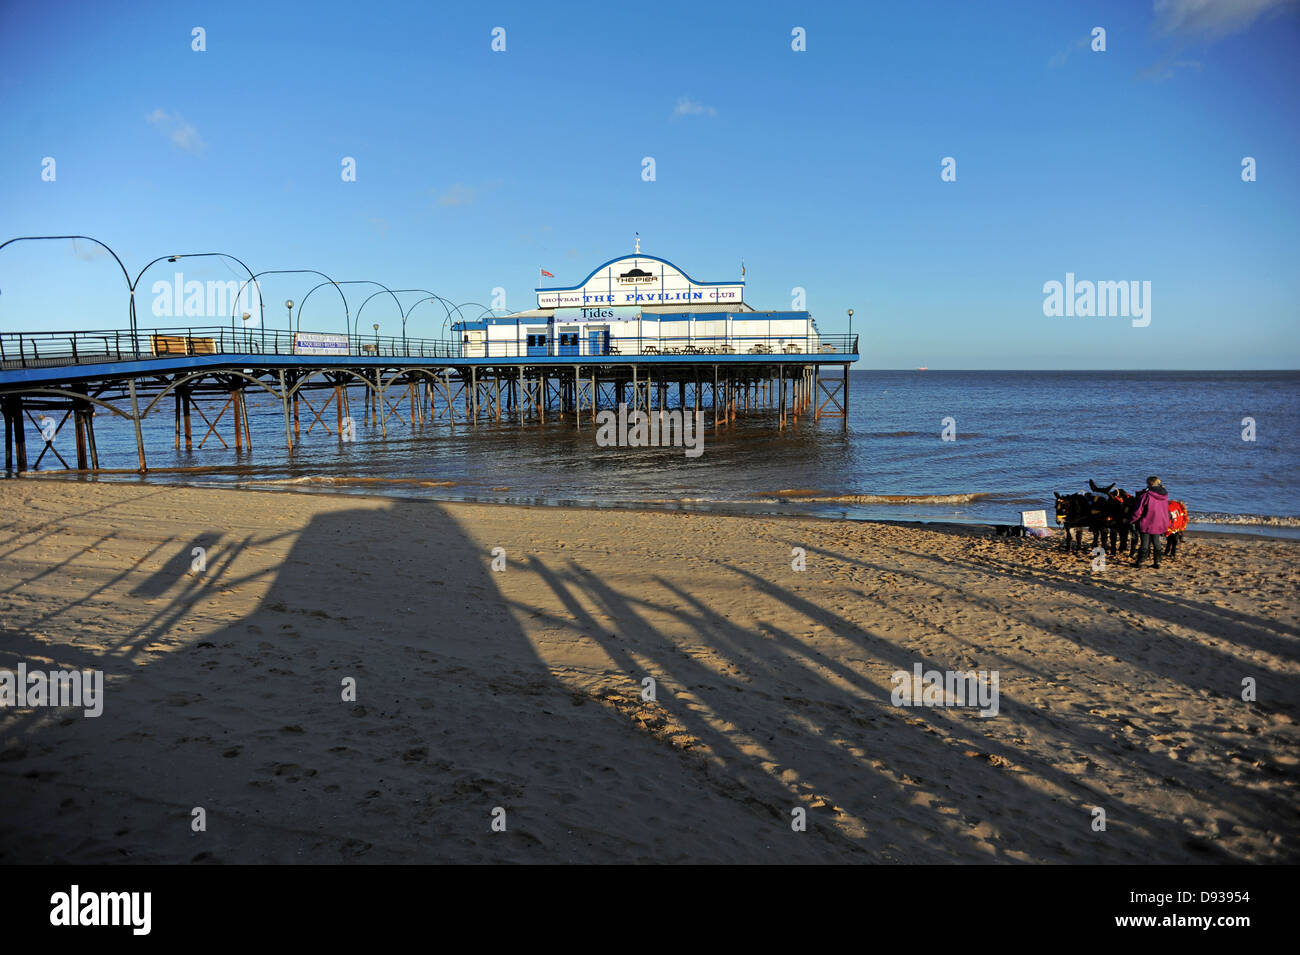 Cleethorpes Pier 39 a traditional victorian pier which is now a nightclub and is currently up for sale Stock Photo